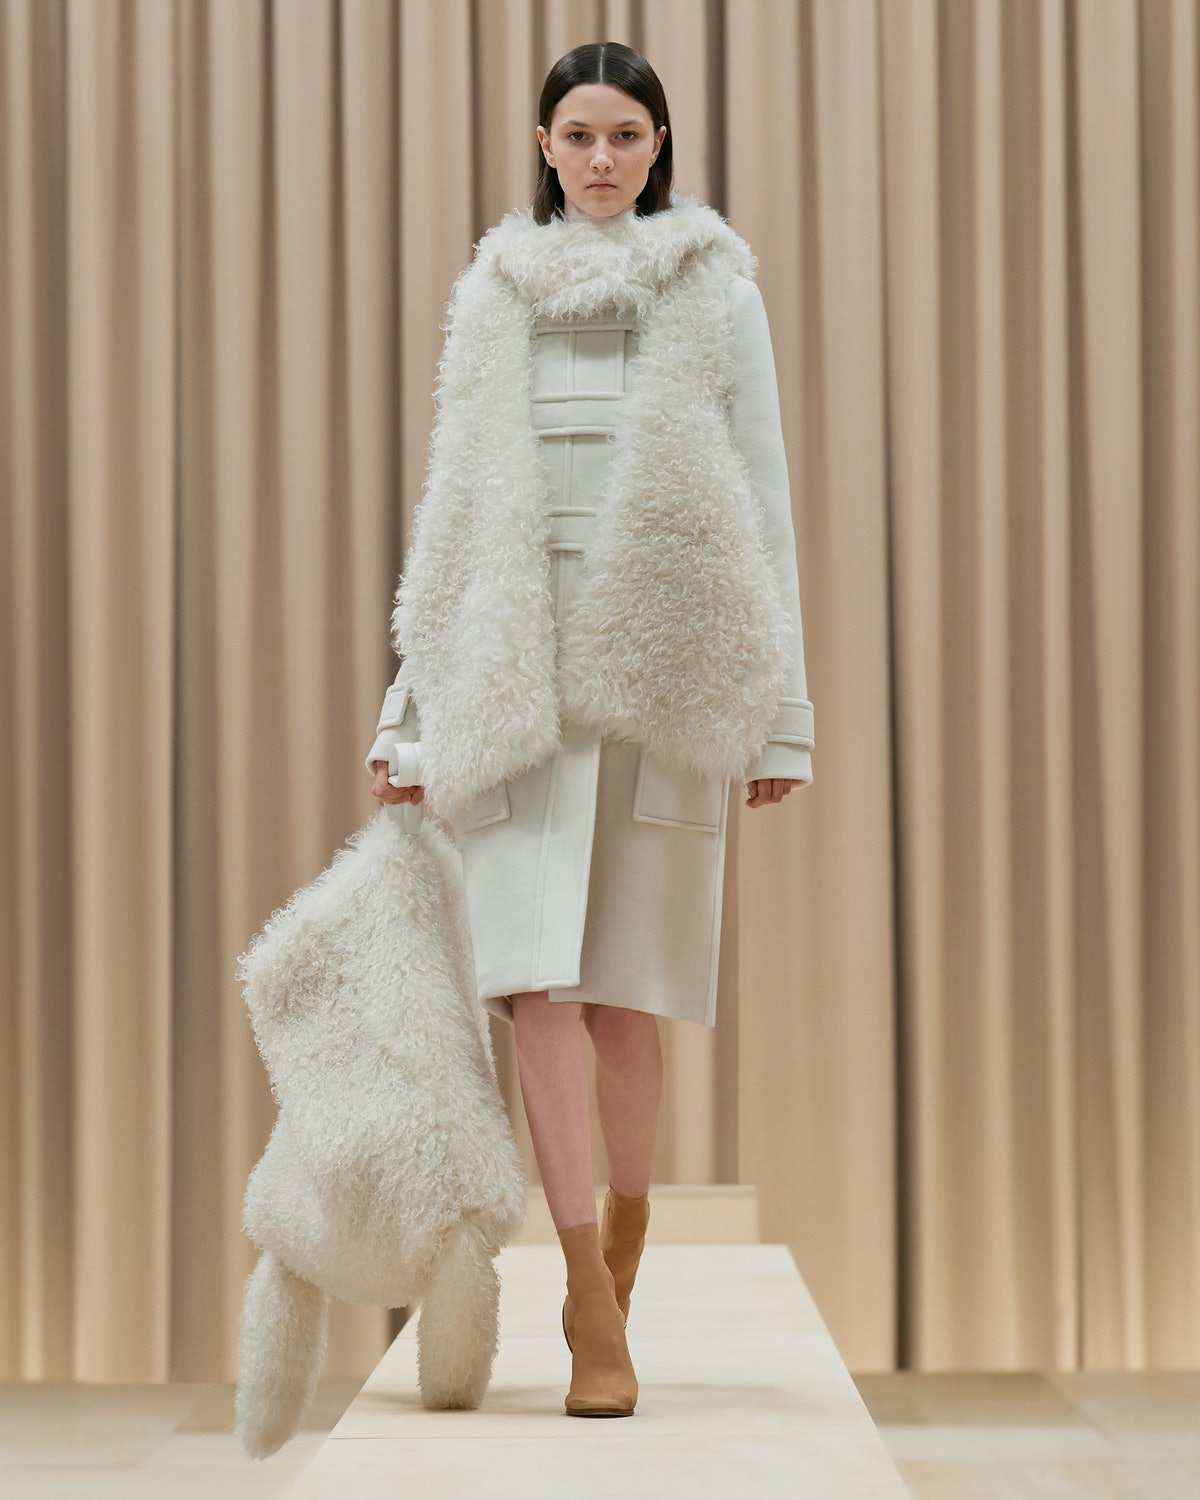 Model walks in Burberry's Fall/Winter 2021 show wearing an all-white outfit.